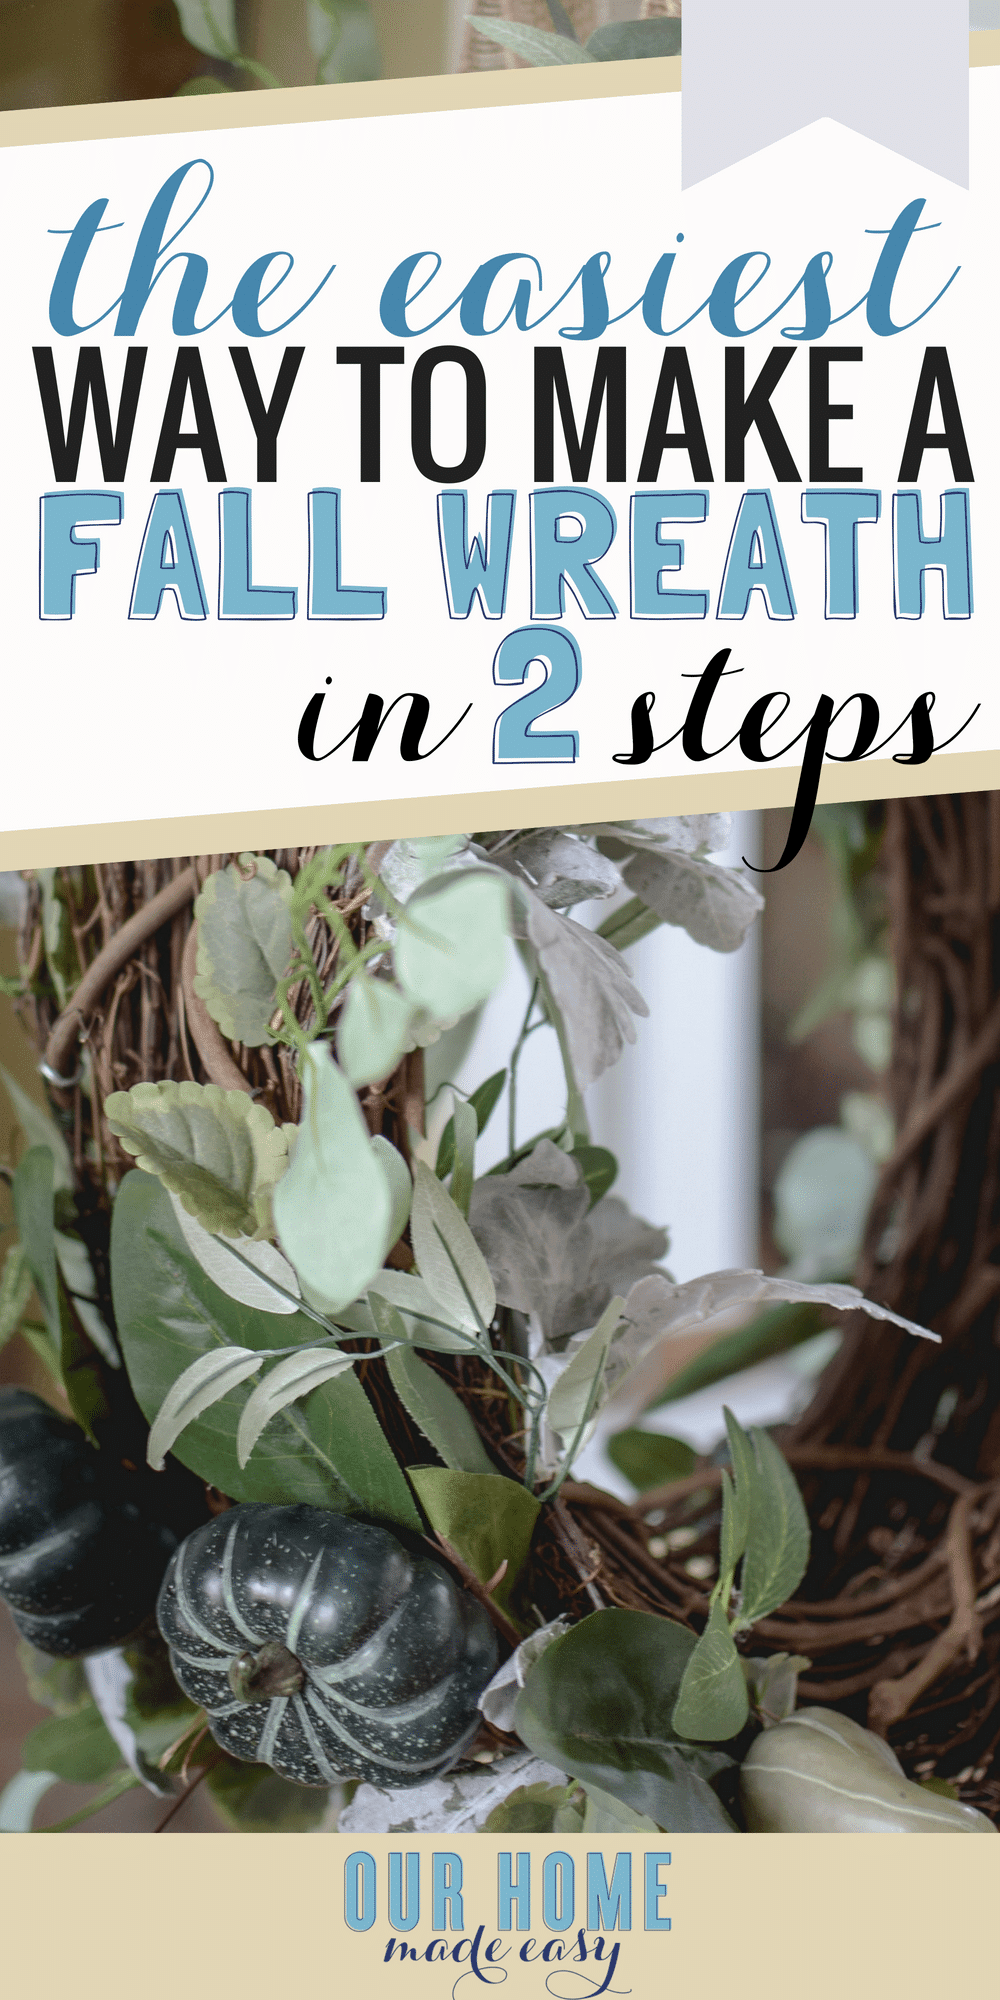 Here is an easy fall wreath DIY tutorial and a tour of our entryway decorated for fall. Check out the easy DIY and how to add charm to your home, quickly! #fall #crafts #wreaths #home #falldecor